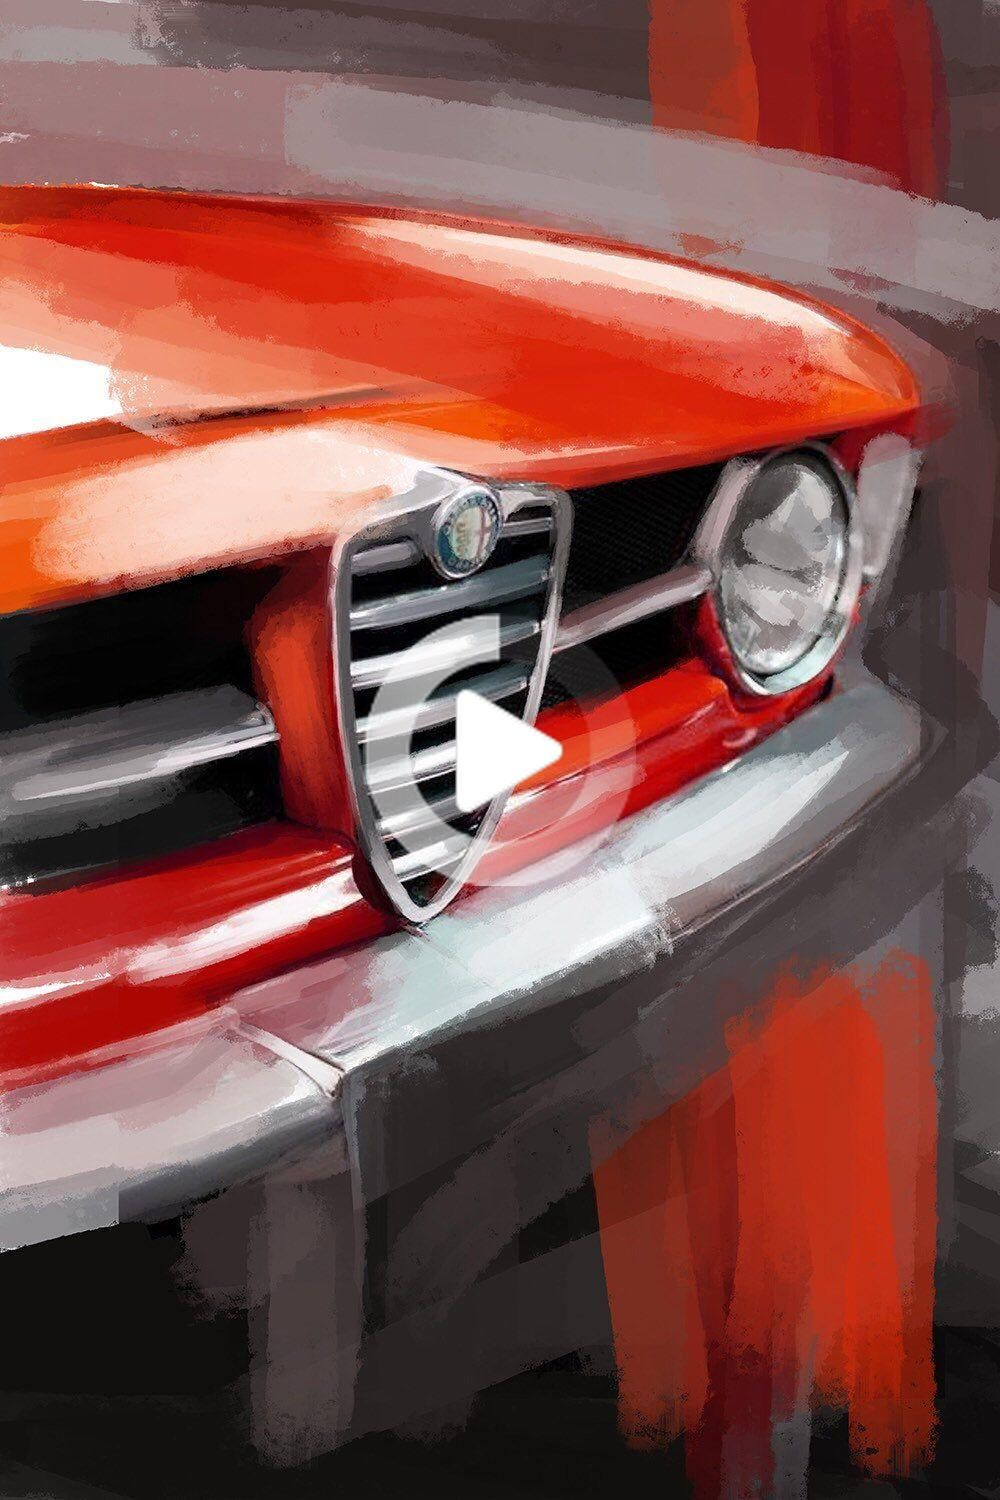 Alfa Romeo GTV, classic car large wall art. Canvas print or a paper giclee print